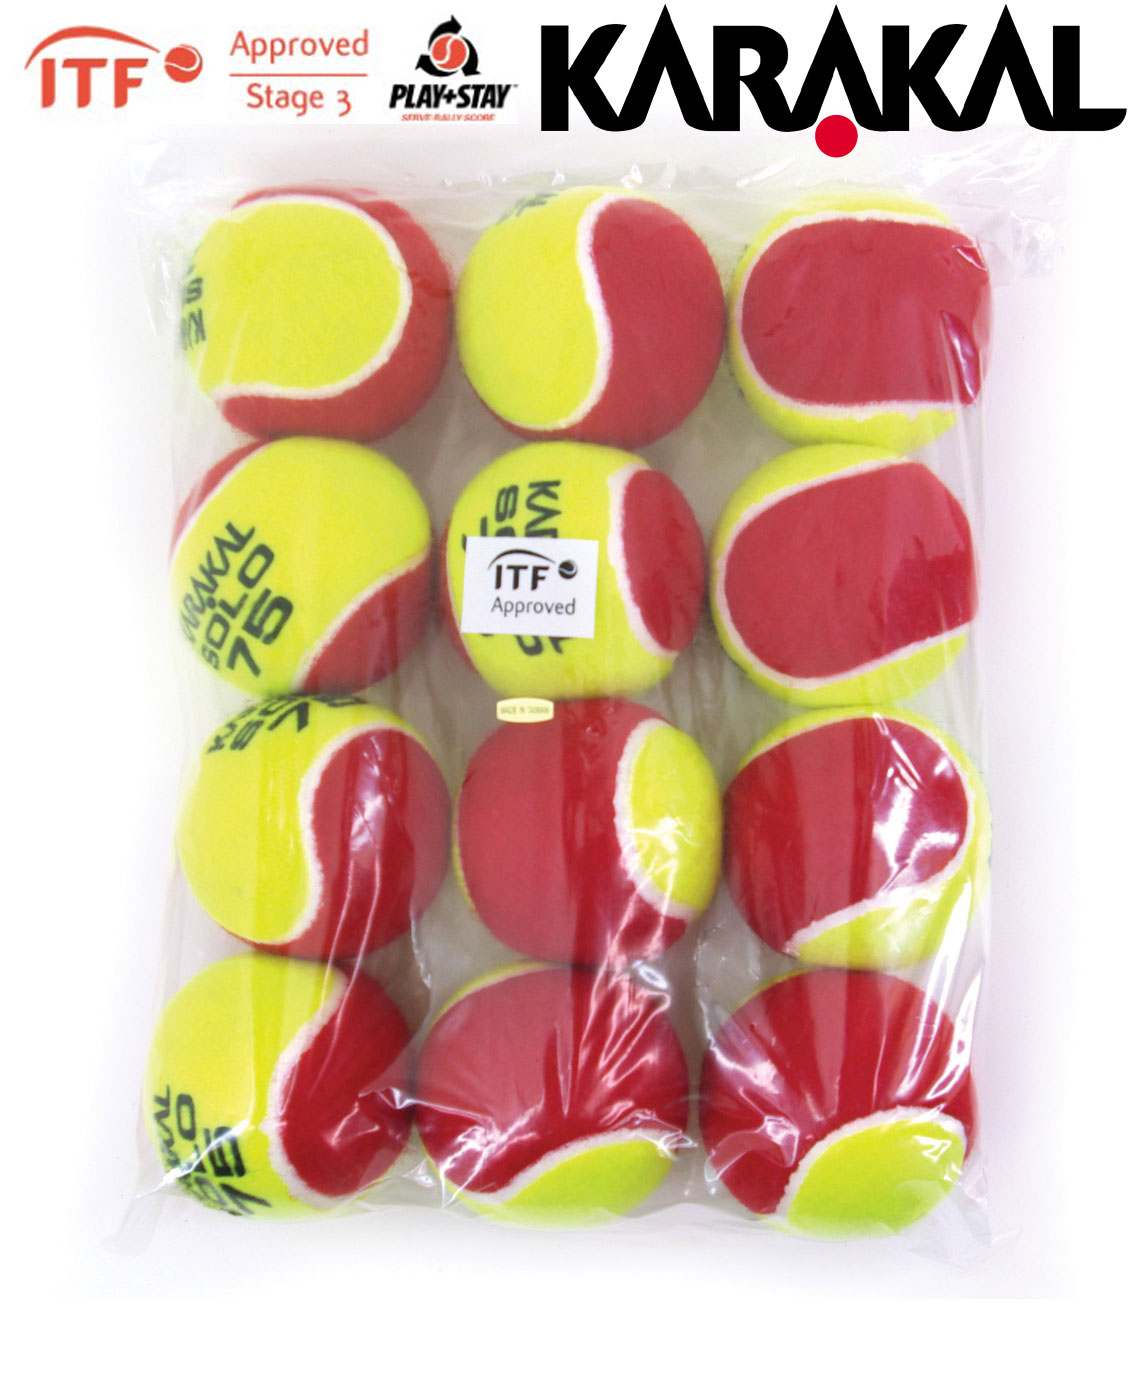 Karakal Solo 75 Transition Low Pressure Tennis Balls Pack of 12 balls